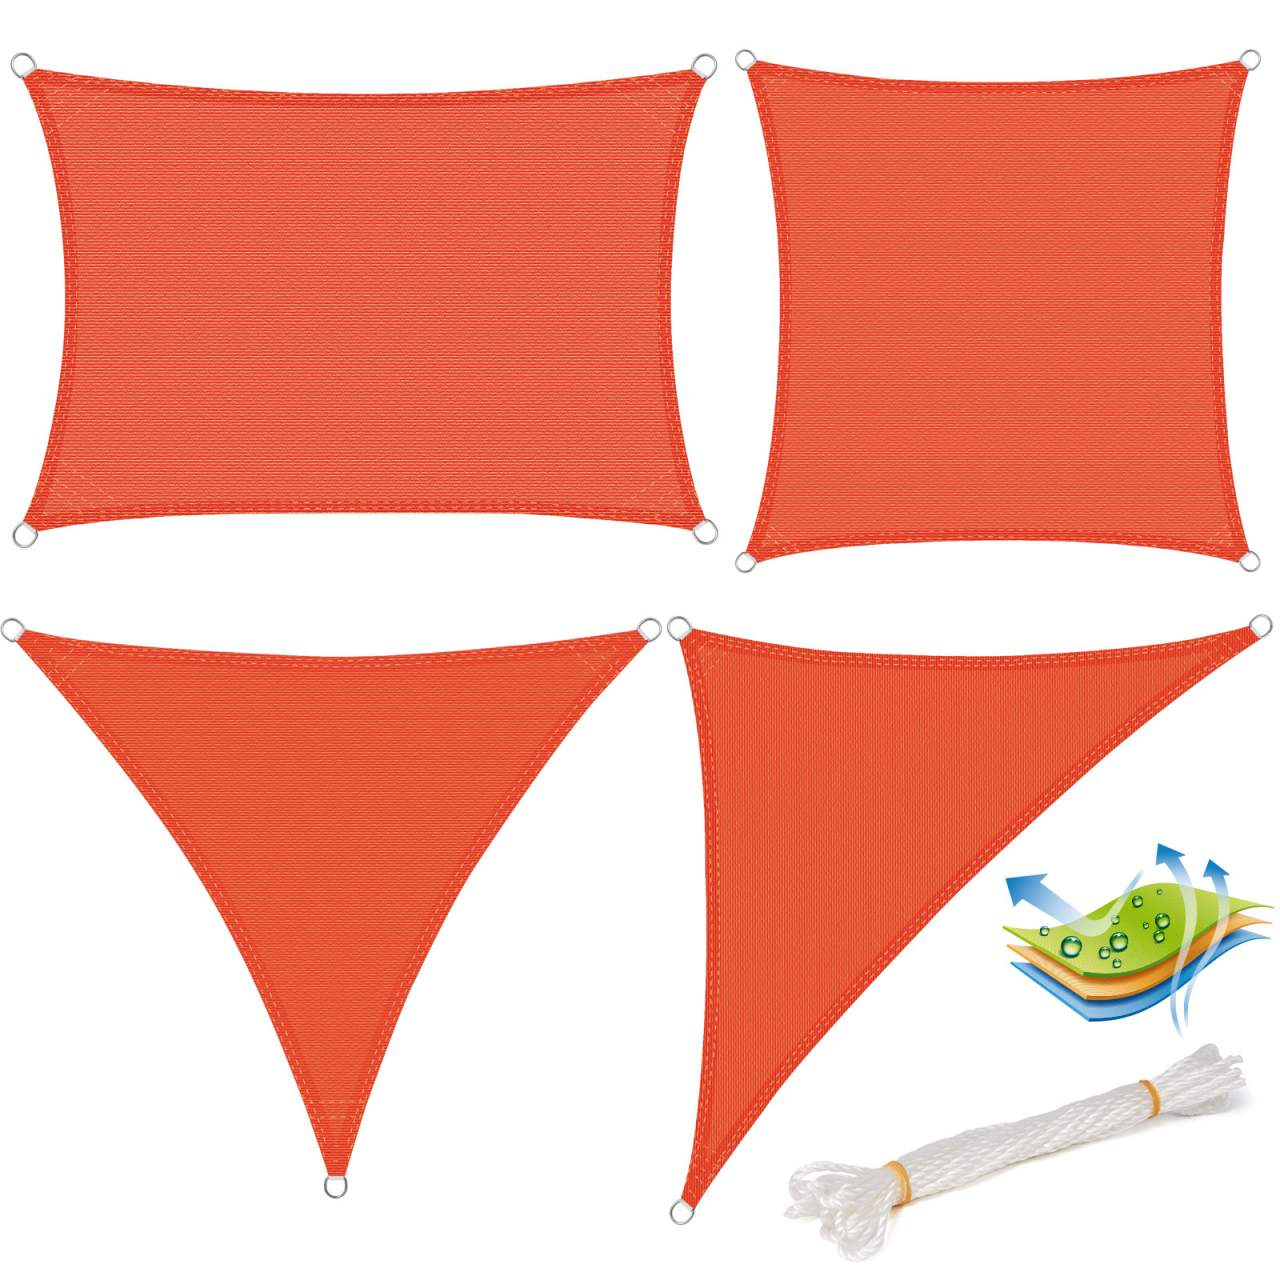 sun shade sail breathable hdpe sunscreen awning canopy for outdoor garden patio yard party uv block terracotta